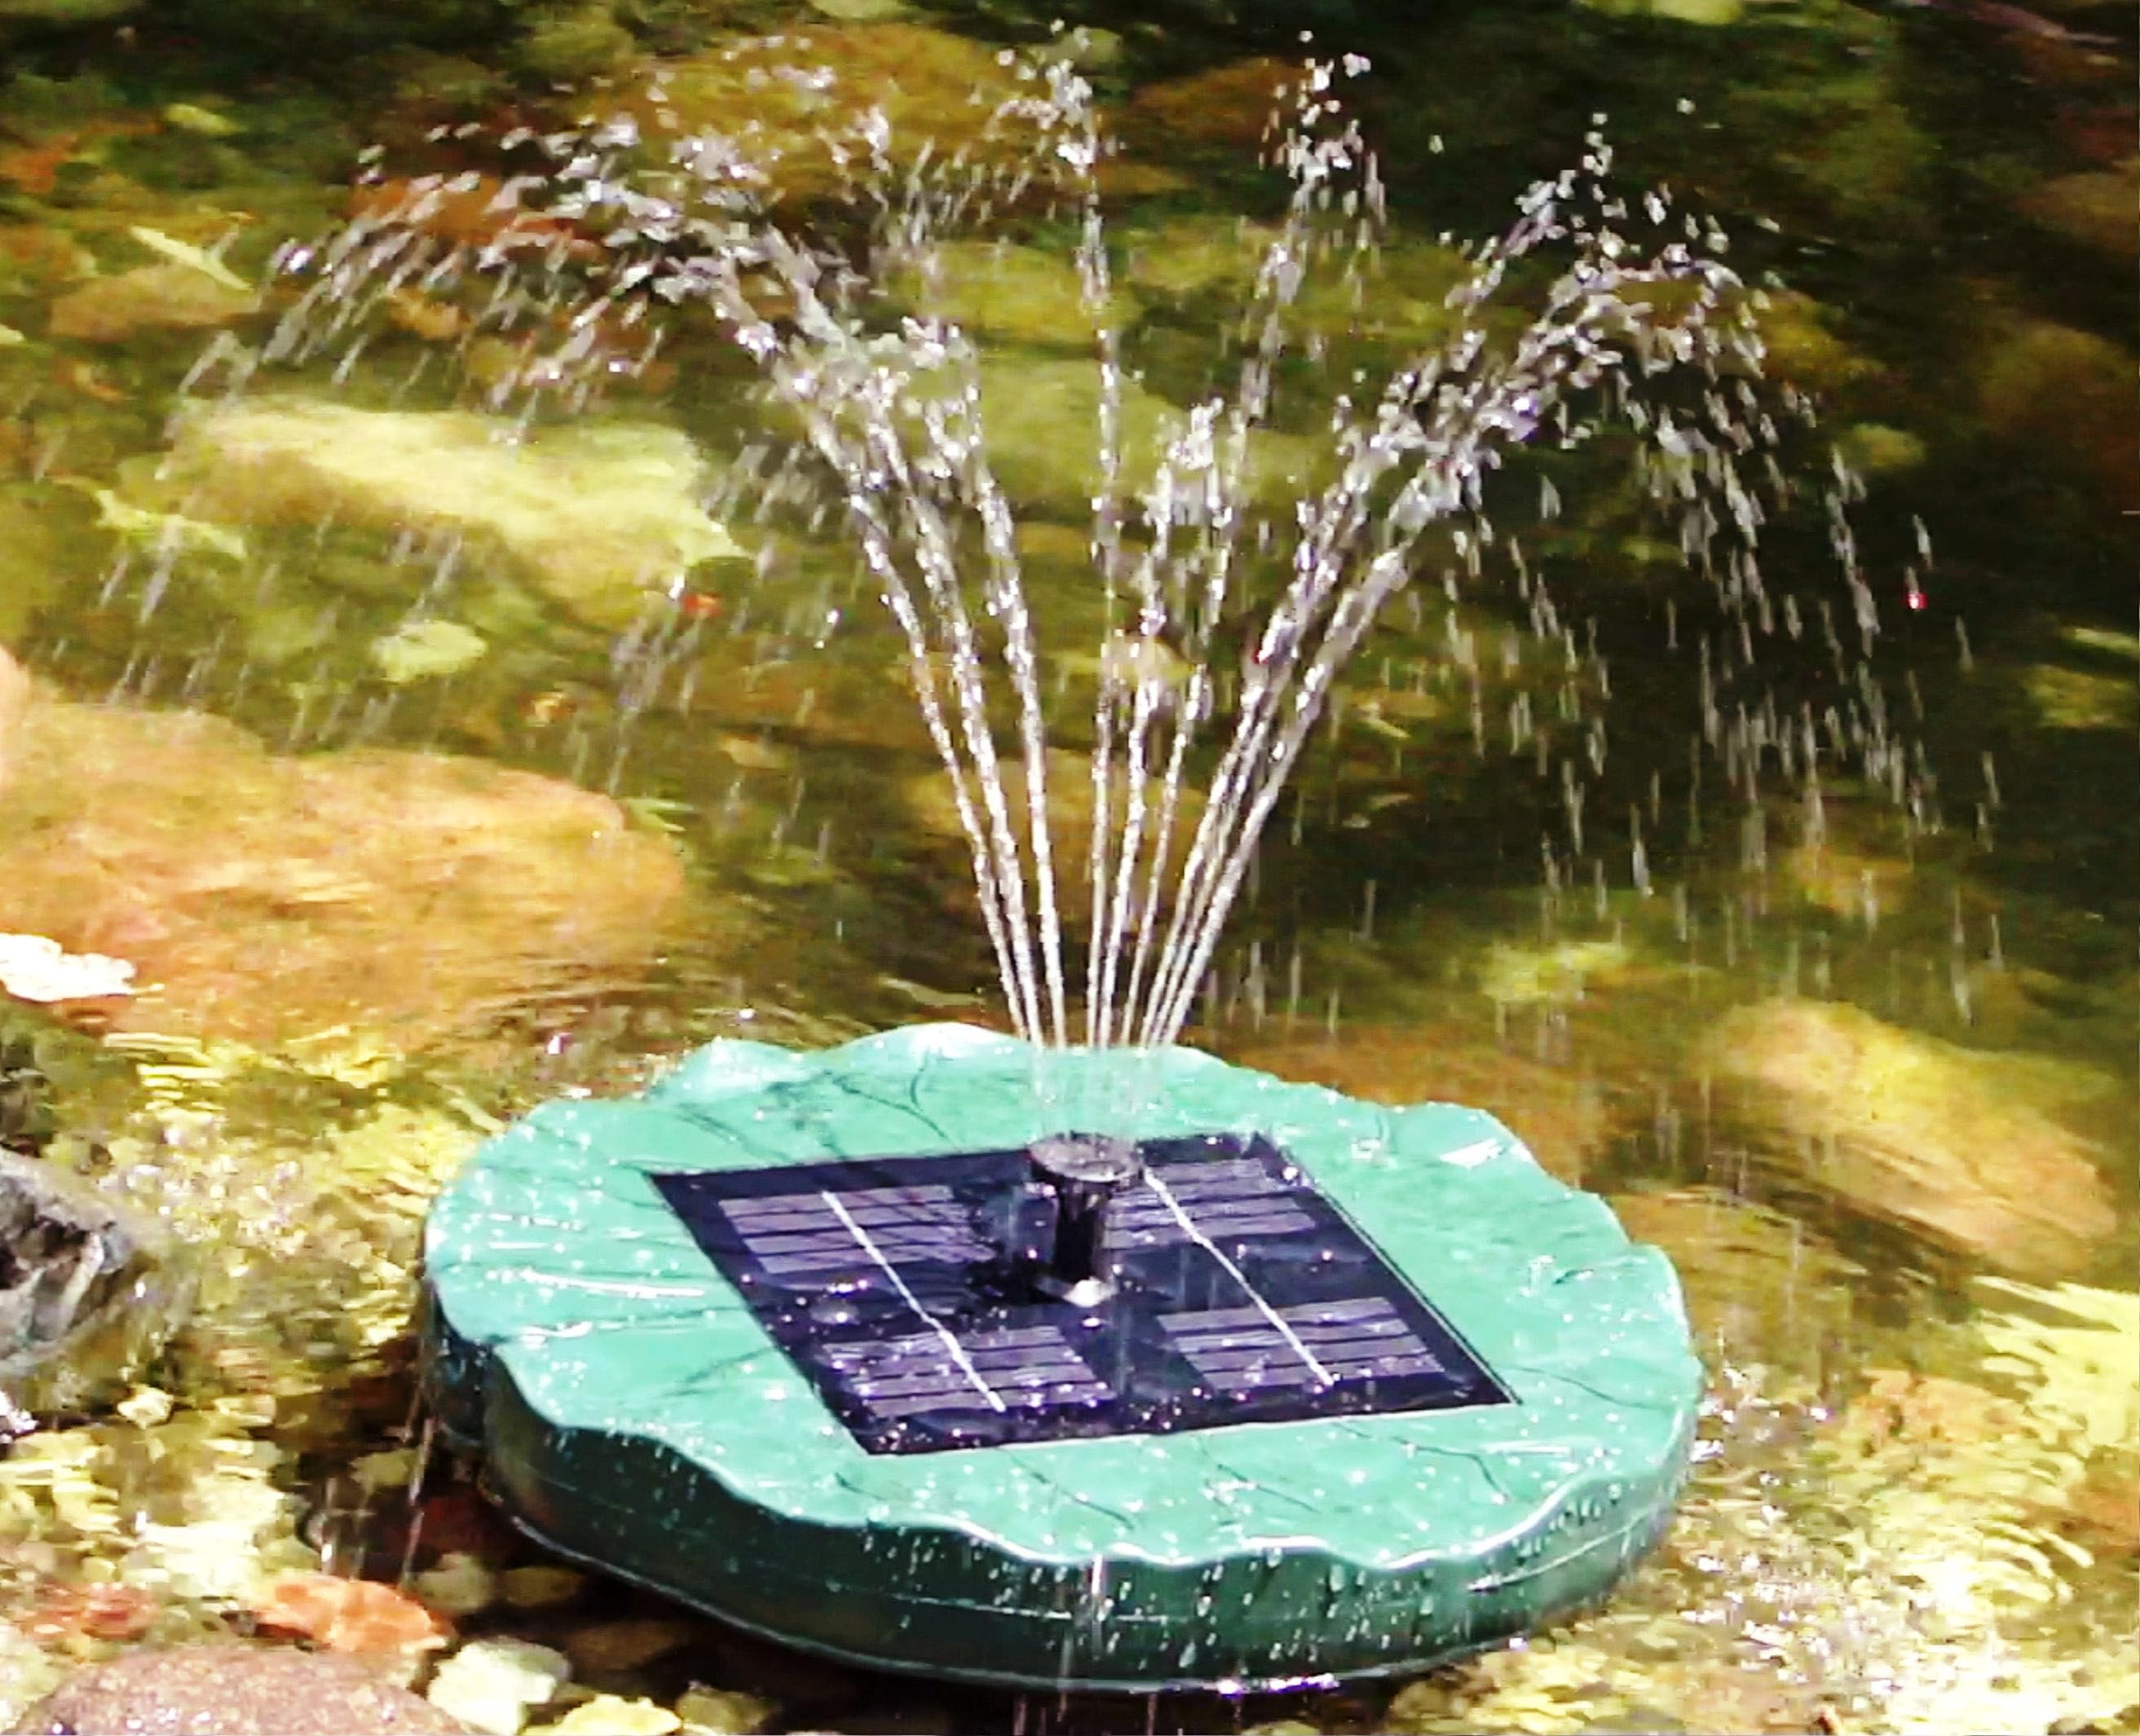 Solar powered pond fountain fountain design ideas for Waterfall fountain